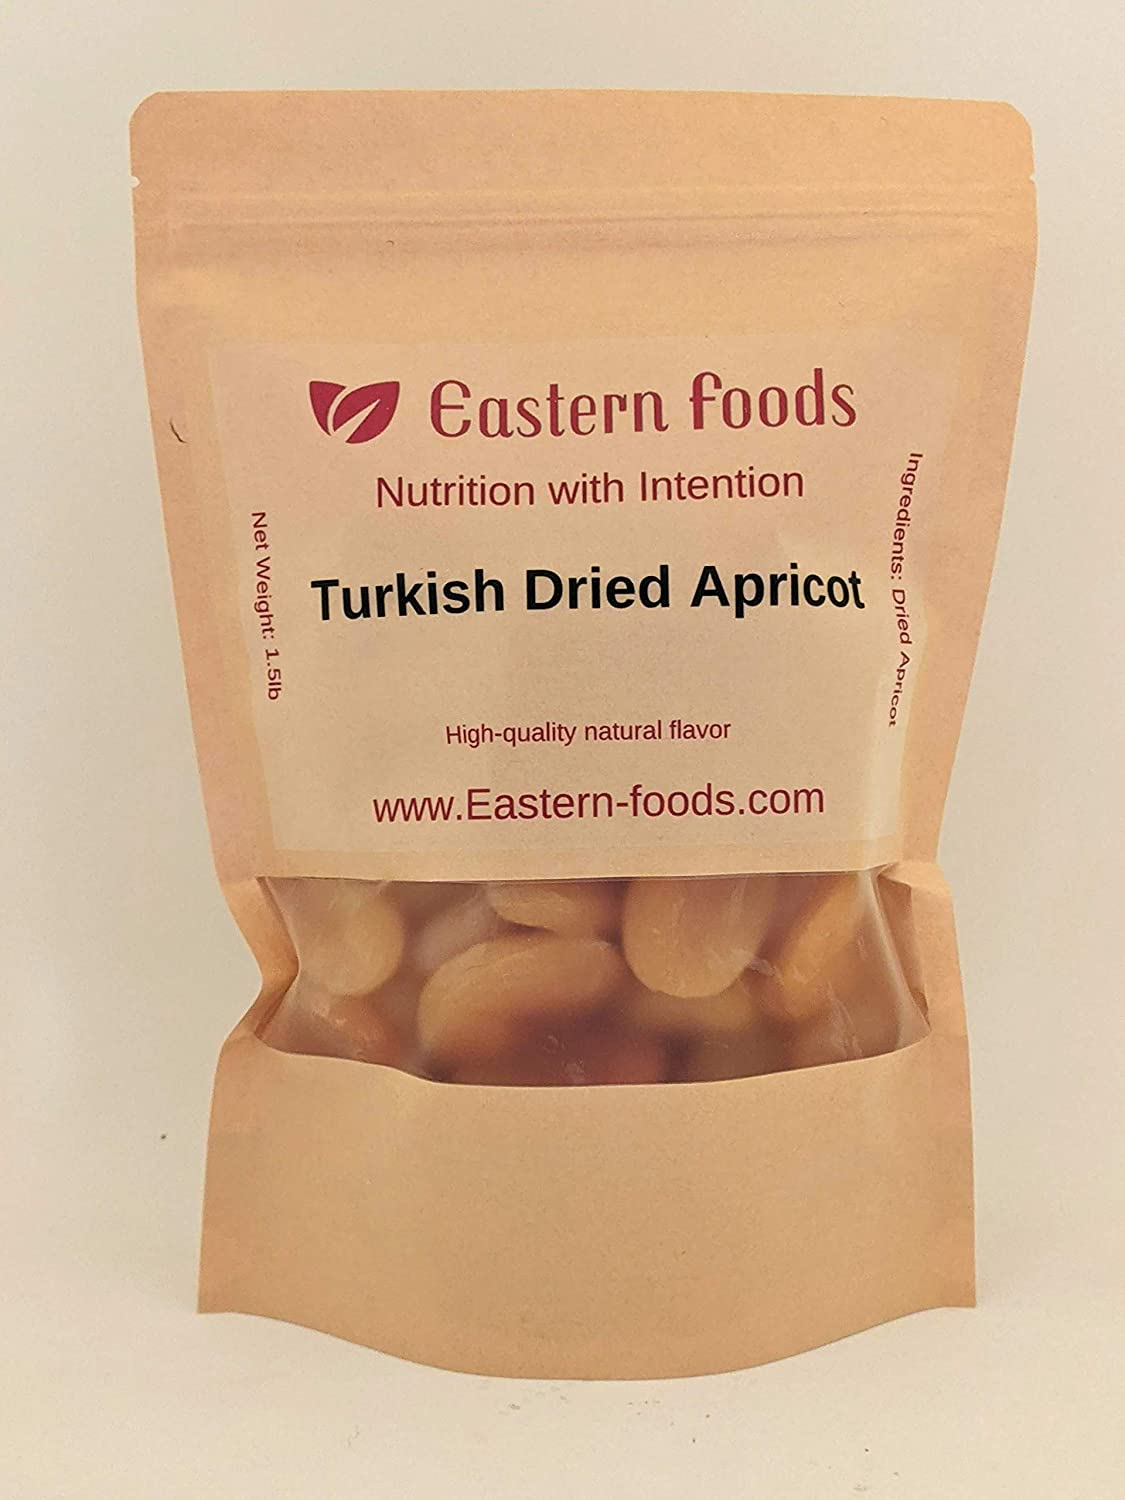 Super beauty product restock quality top Eastern Foods Turkish Dried Elegant Apricot 1 Turki Delicious lb.